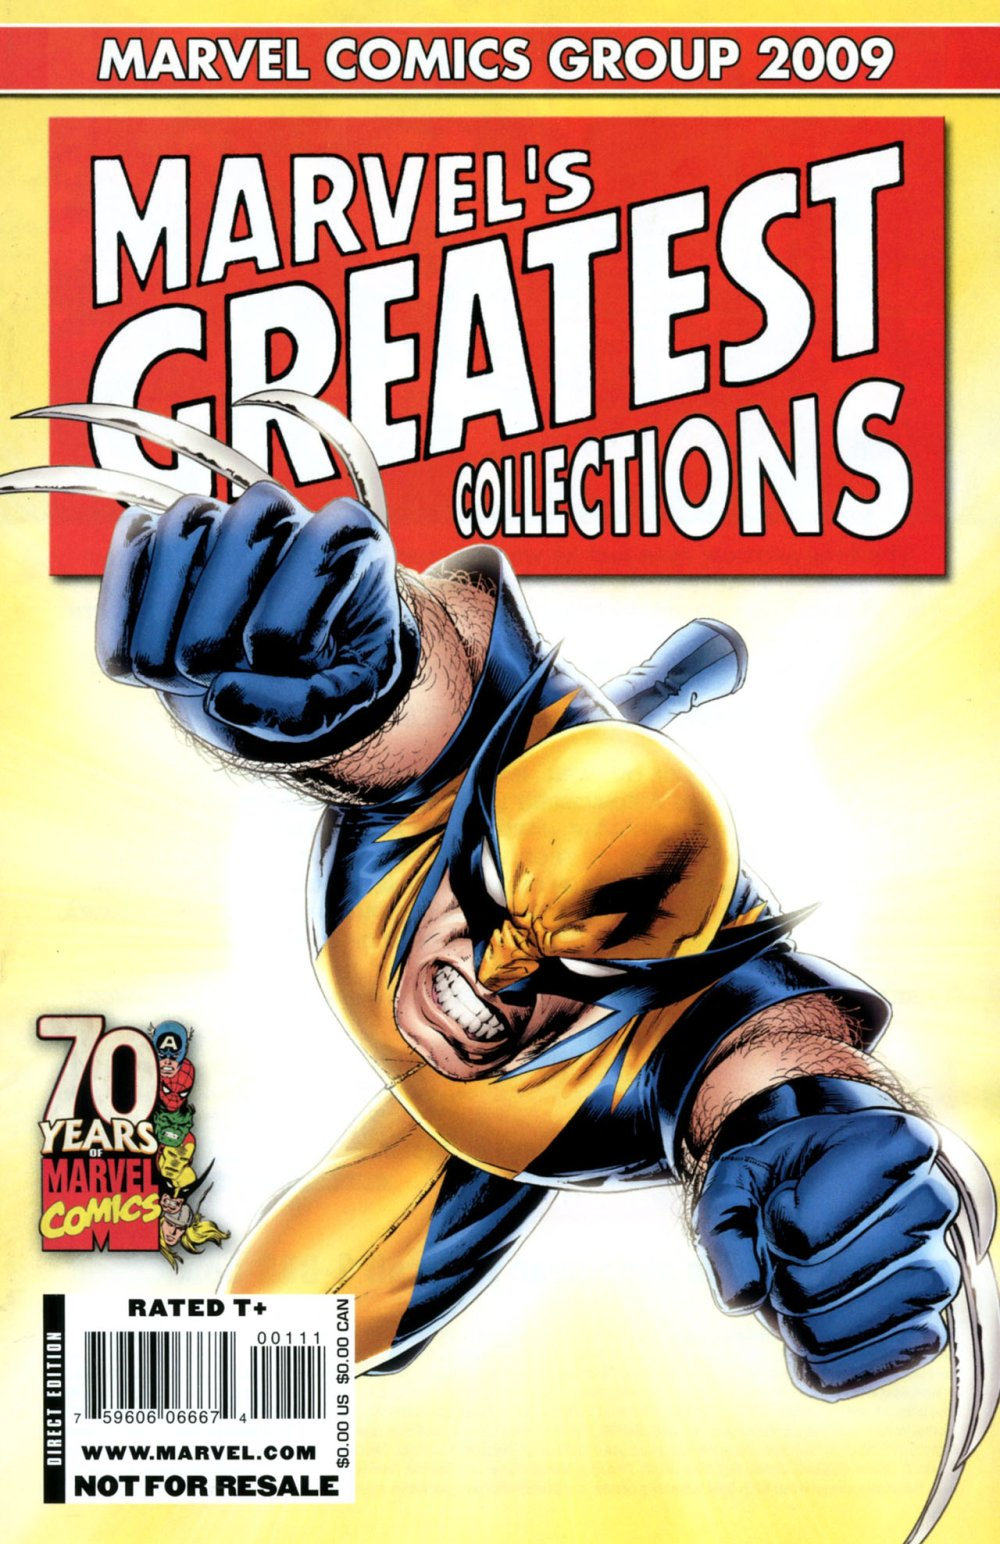 Marvels Greatest Collections [Marvel] OS1 0001a.jpg